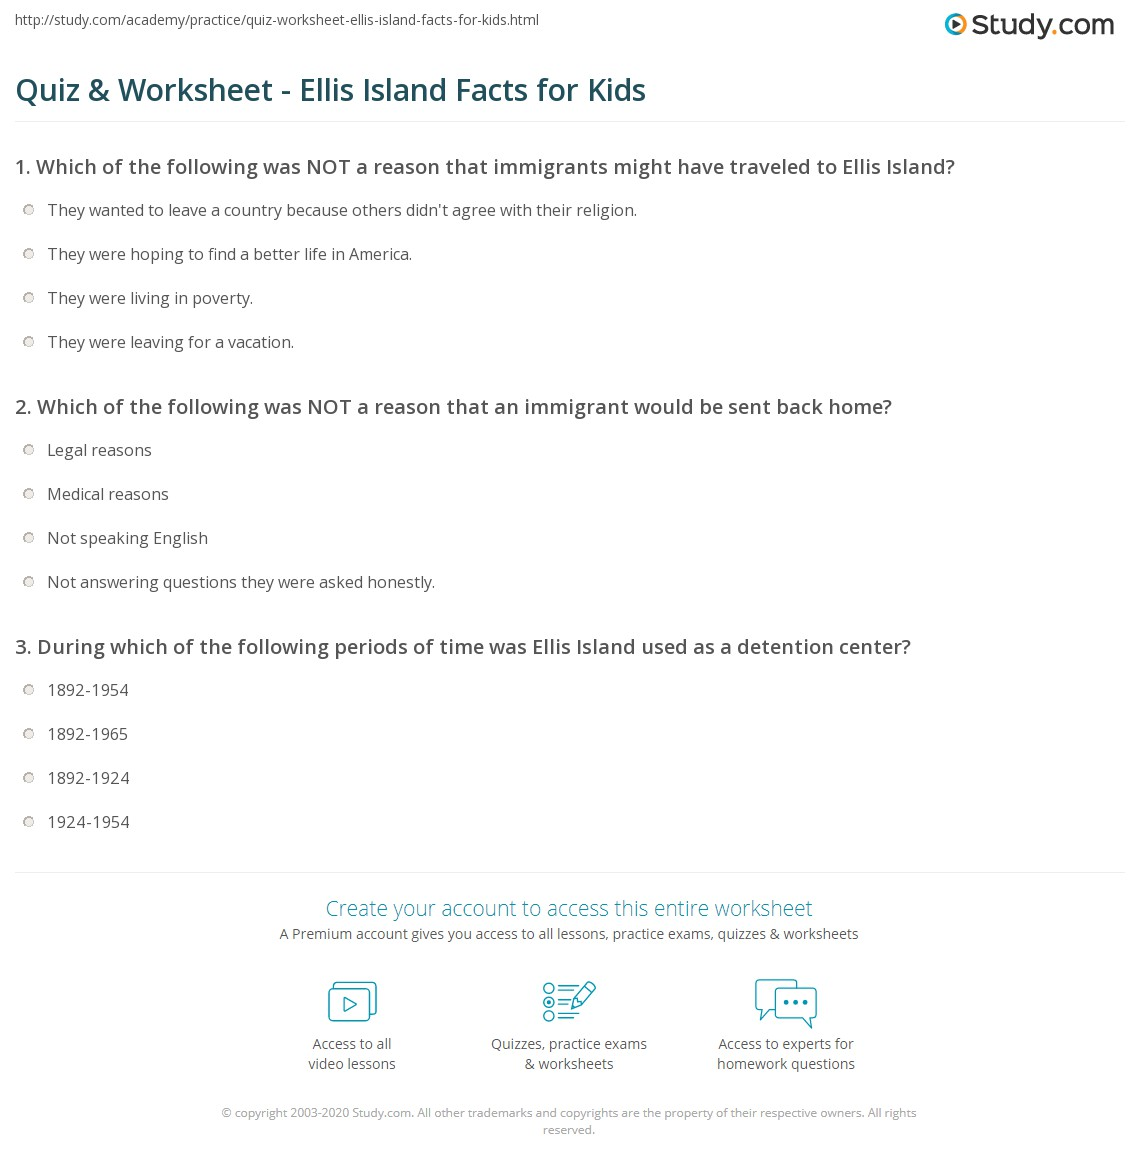 Quiz & Worksheet - Ellis Island Facts for Kids | Study.com